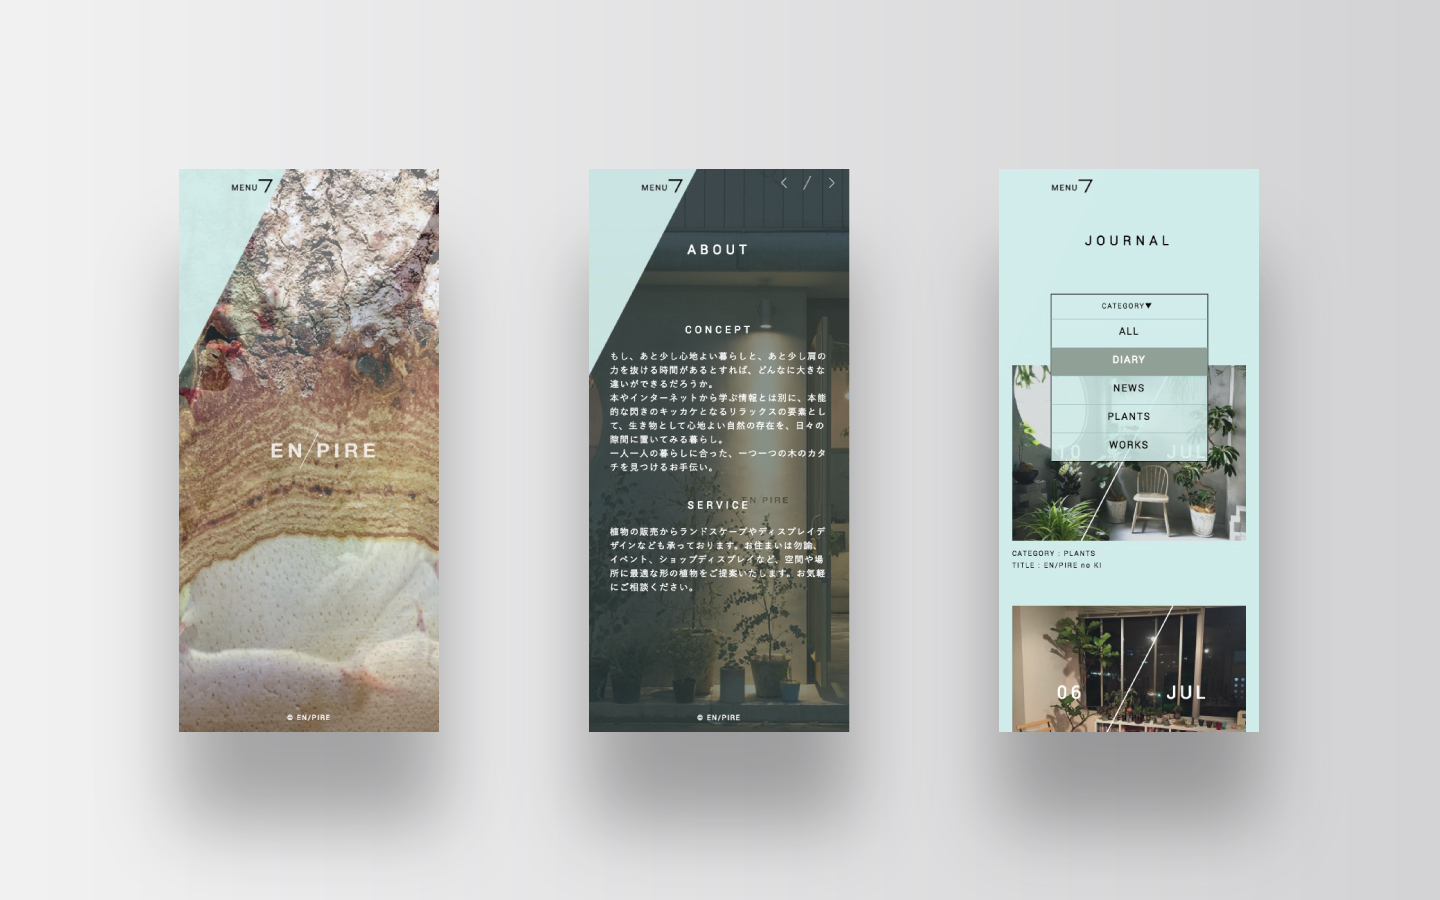 EN/PIRE|Web Design|Smart Phone